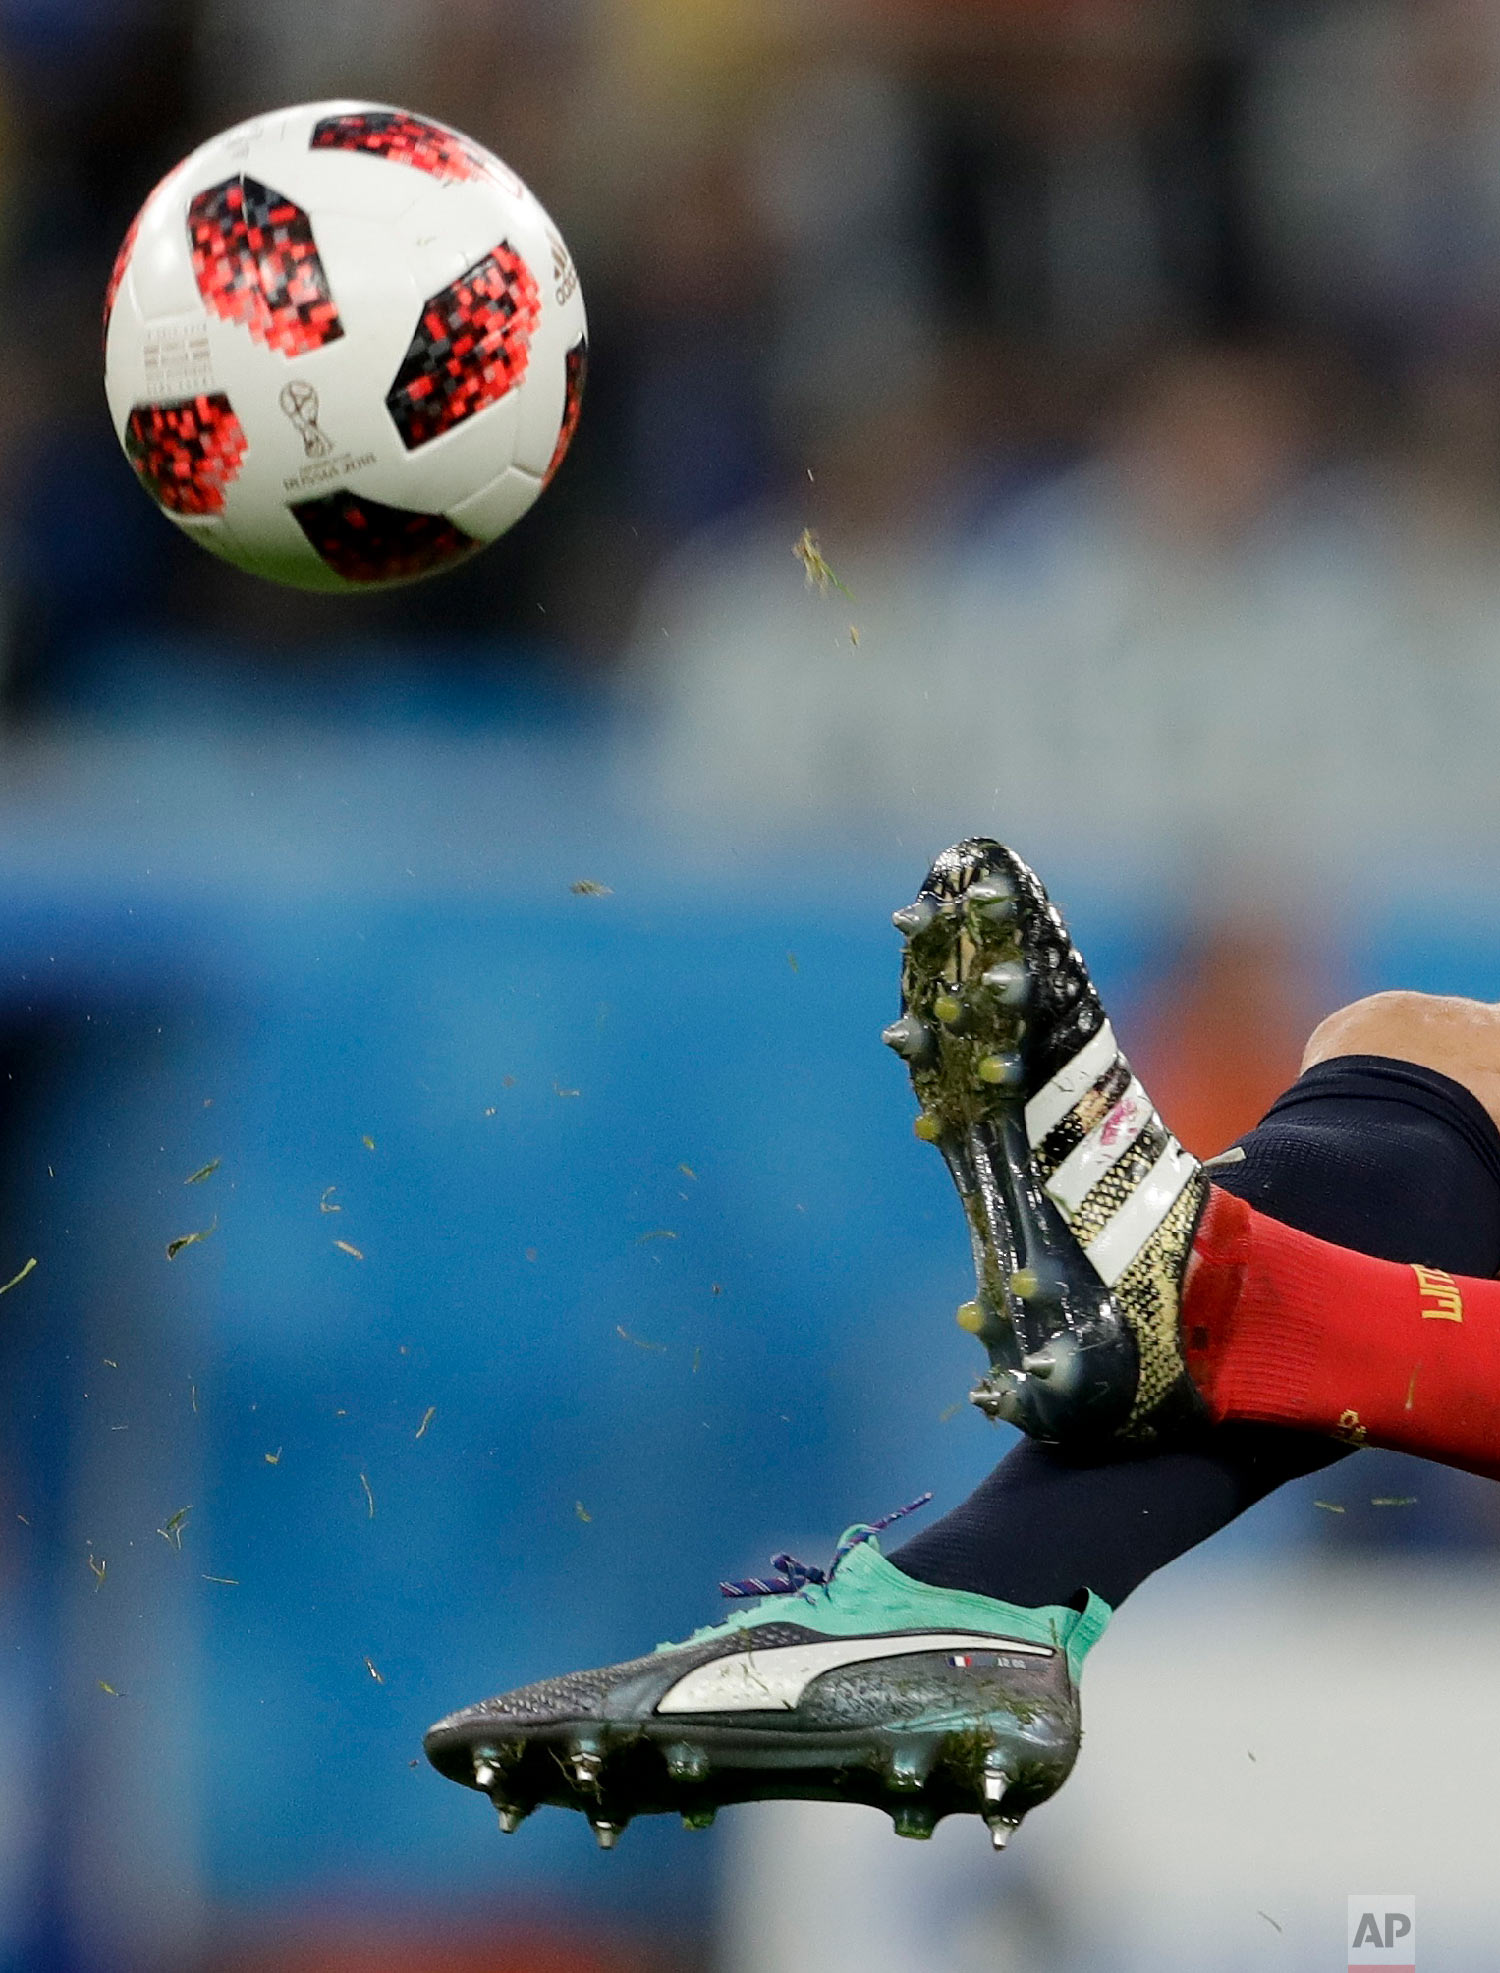 Belgium's Vincent Kompany, in red, challenges France's Olivier Giroud during the semifinal match between France and Belgium at the 2018 soccer World Cup in the St. Petersburg Stadium, in St. Petersburg, Russia, Tuesday, July 10, 2018. (AP Photo/Petr David Josek)